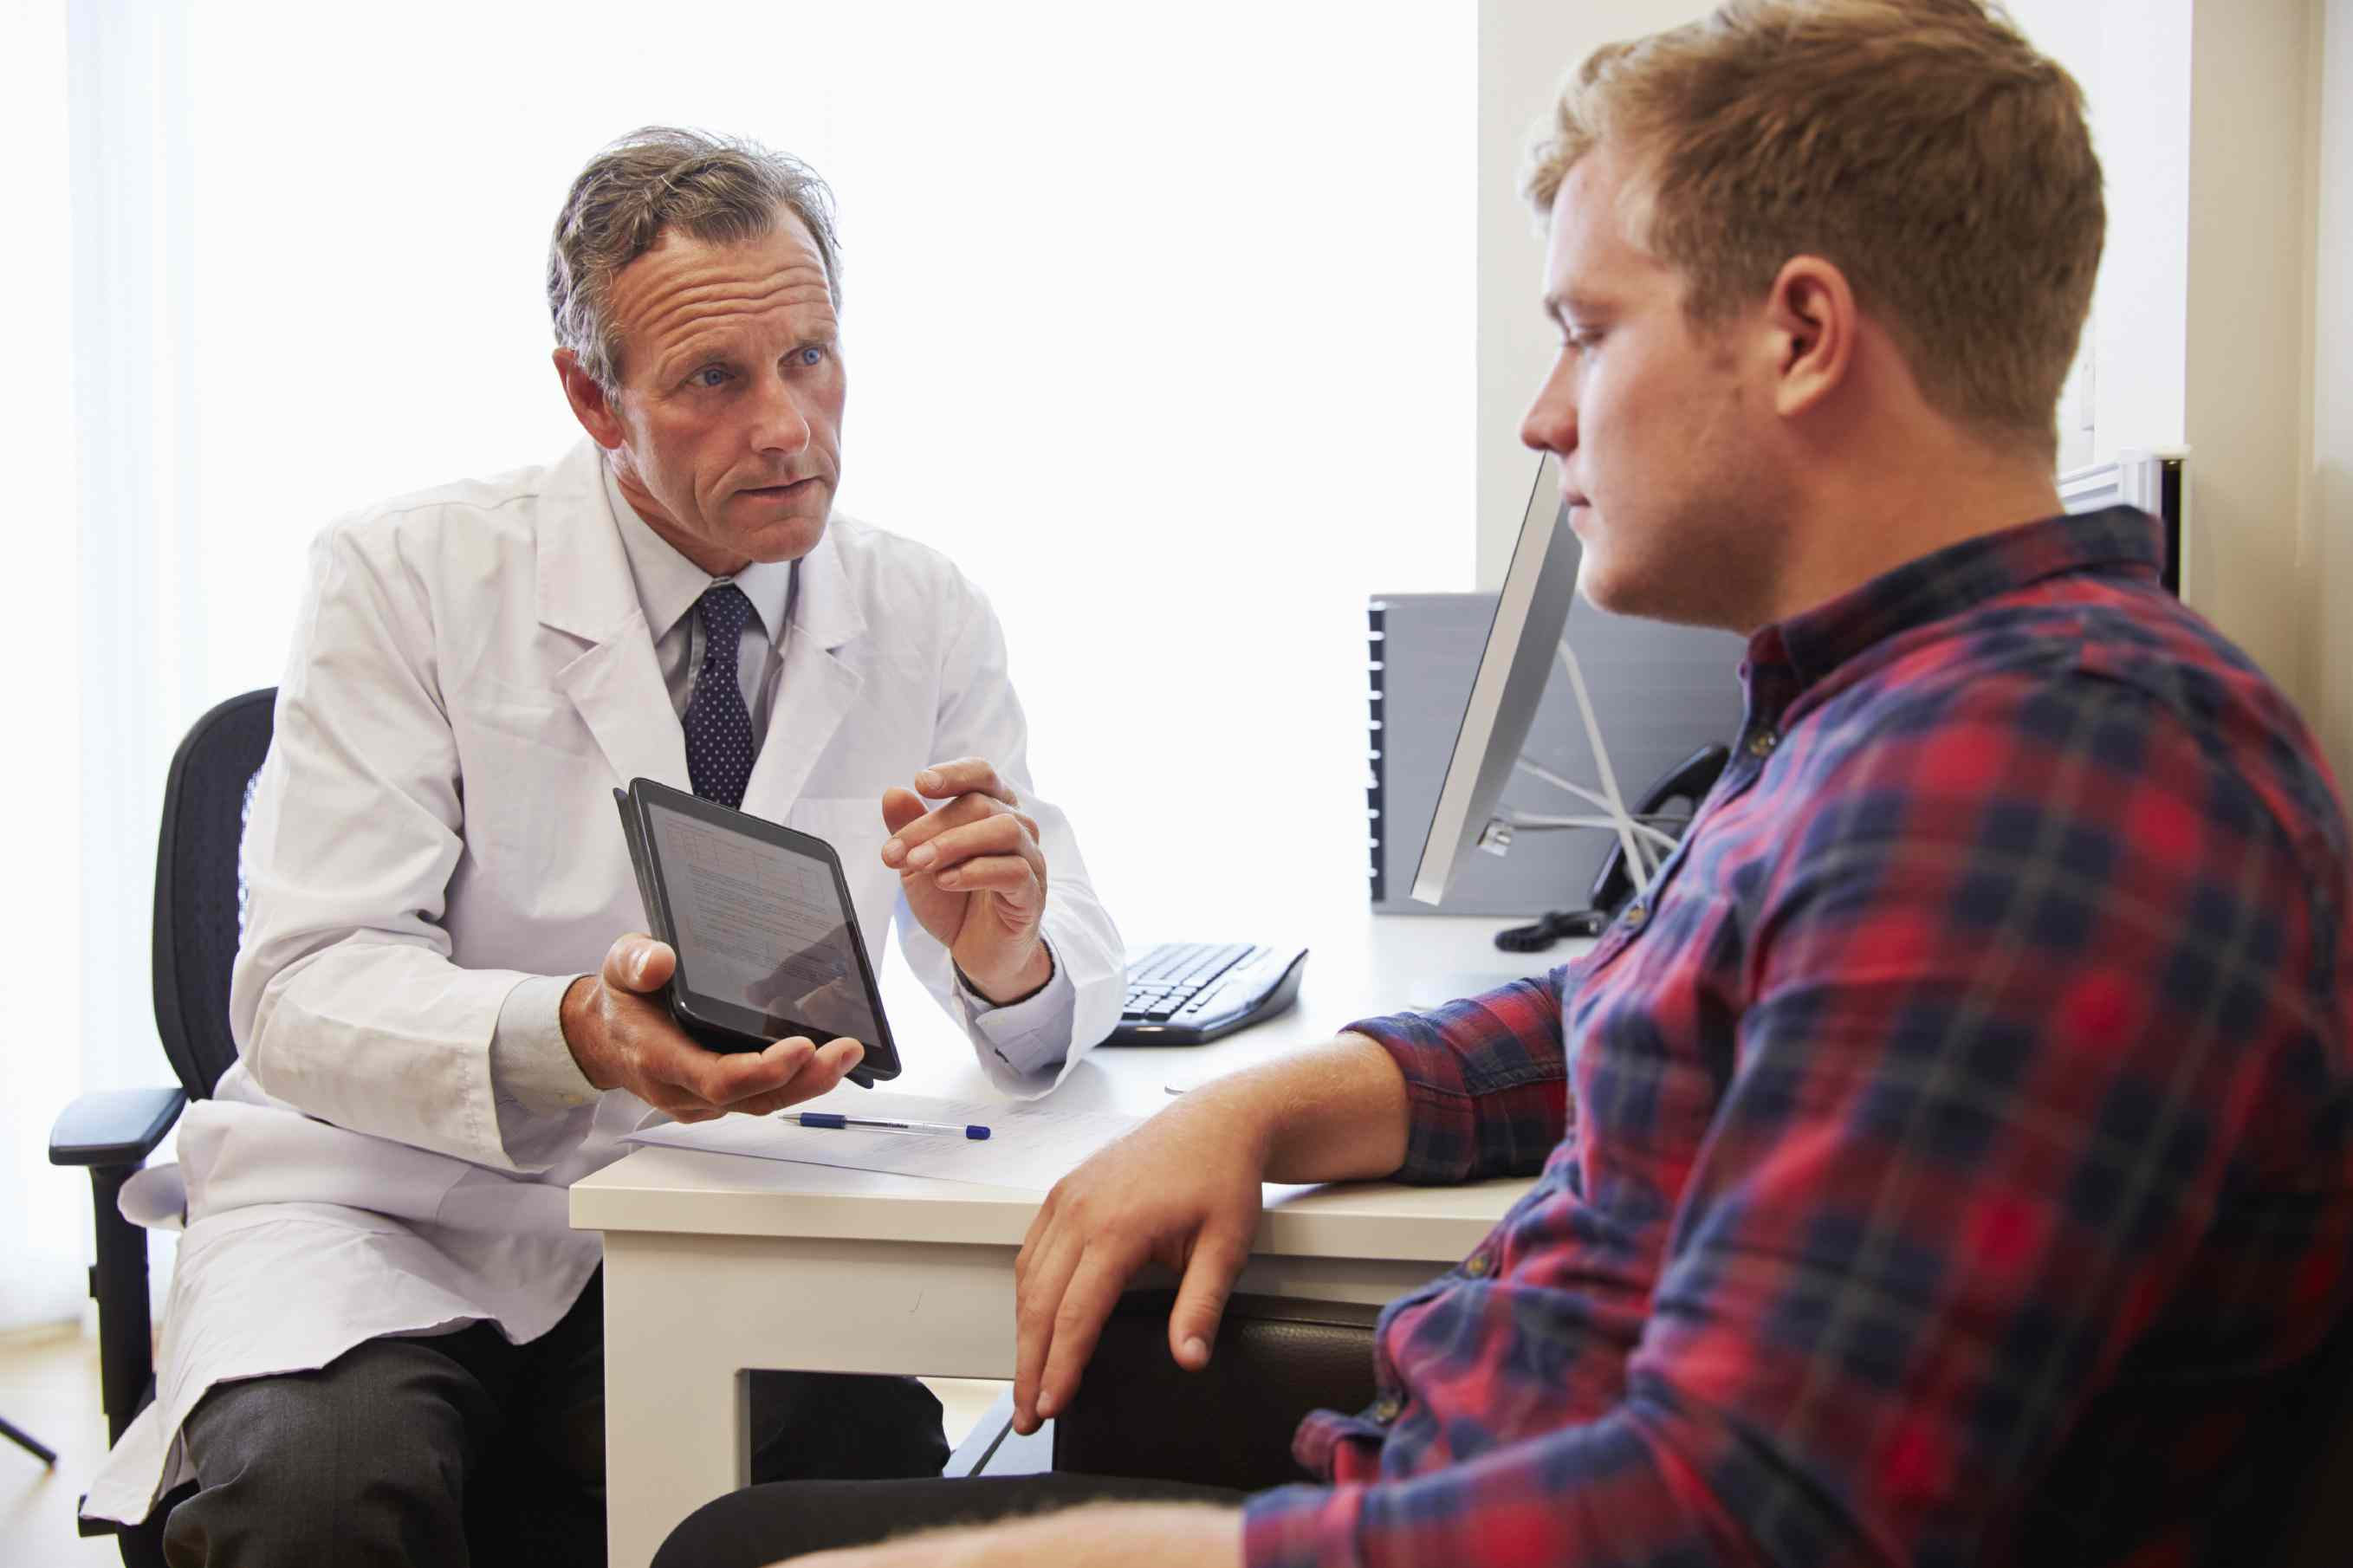 A doctor consulting his patient about high cholesterol